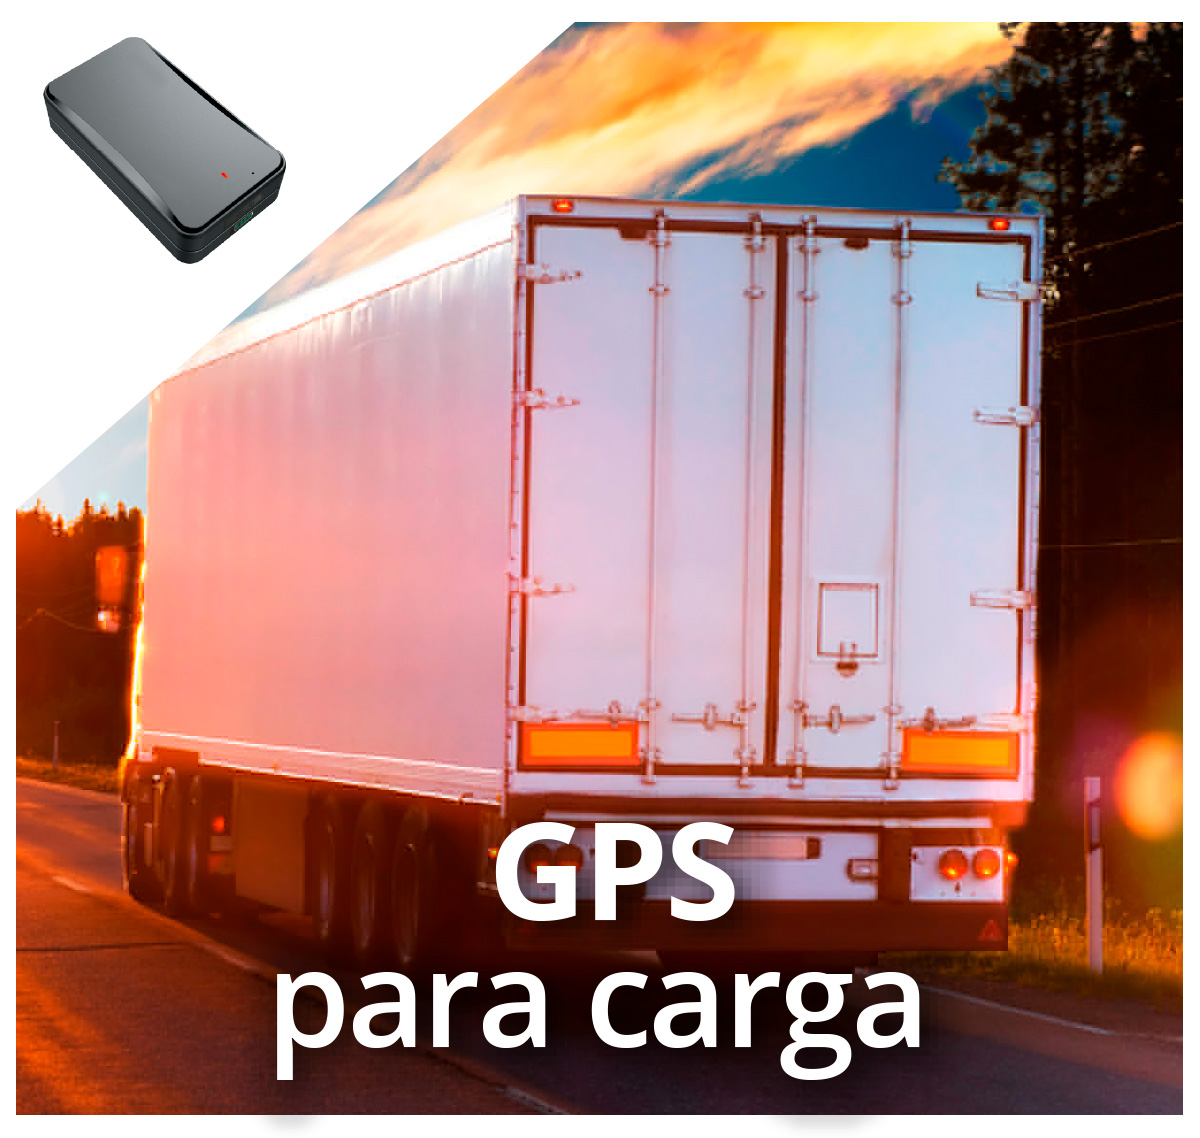 BBOX Security Seguridad guardias virtuales carga - Servicio de Rastreo Satelital y GPS en Guadalajara | BBOX Security